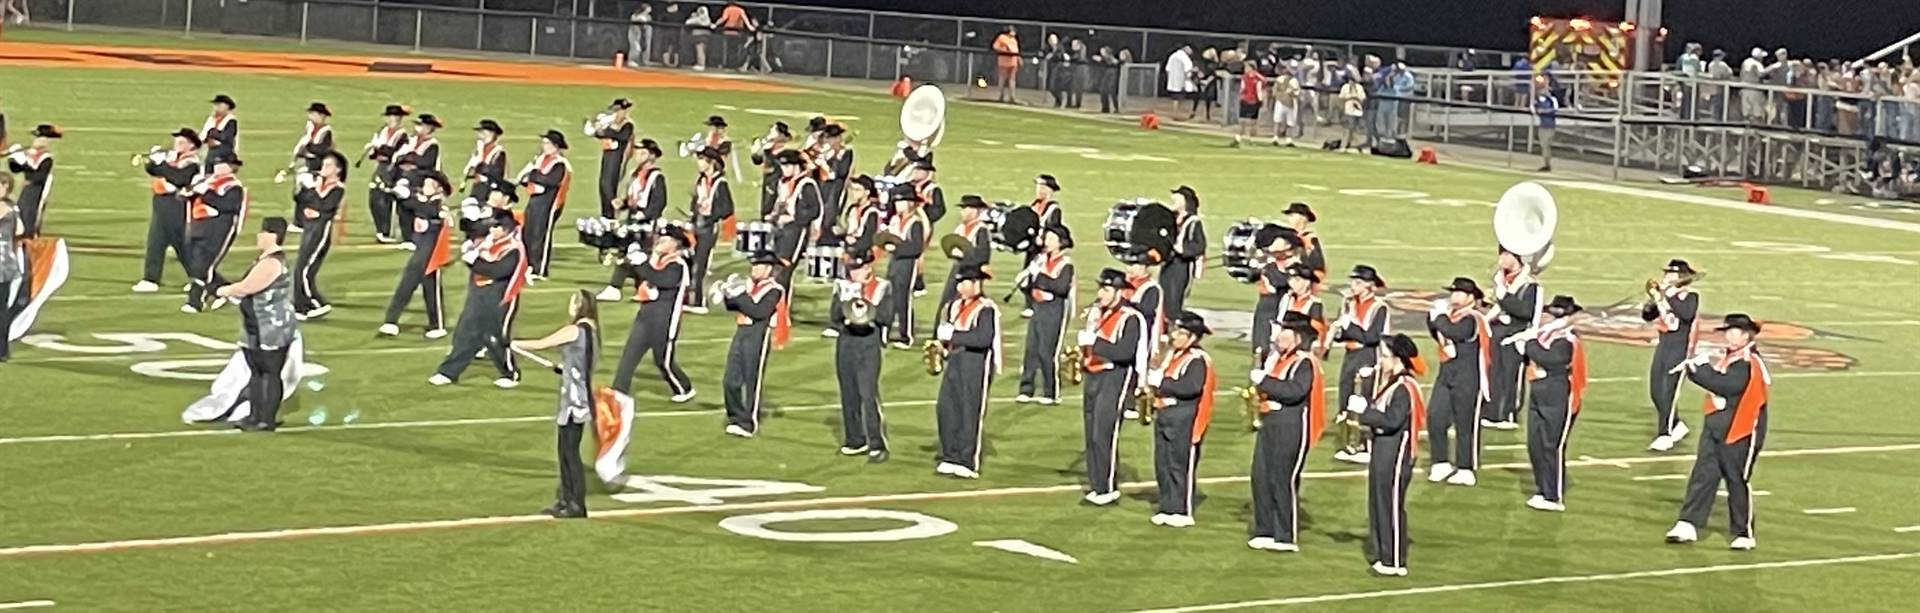 Marching Band performing at Home vs. West